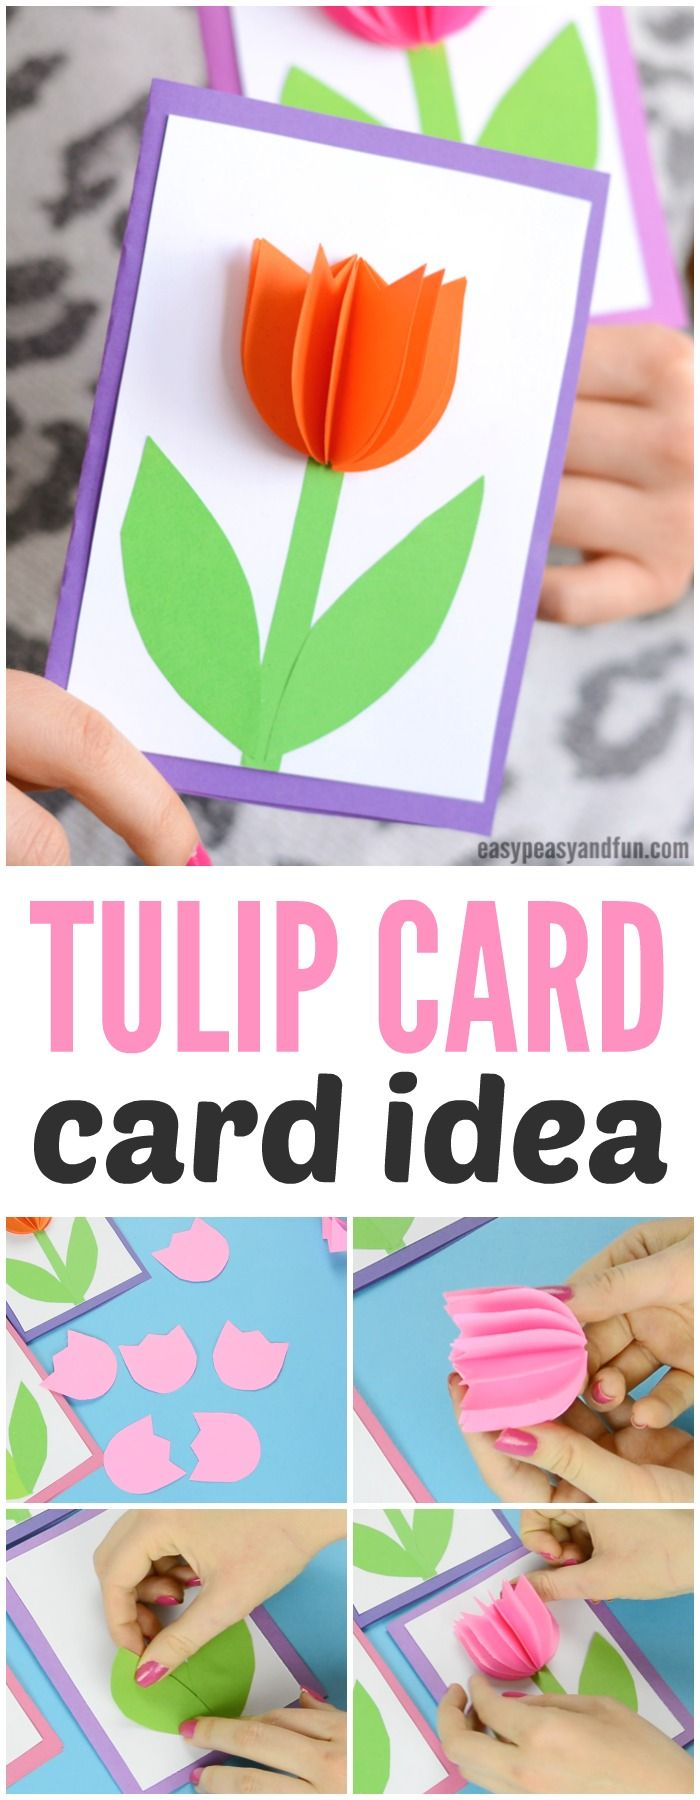 3d Paper Tulip Card Simple Mother S Day Card Idea Tulips Card Spring Crafts For Kids Spring Crafts